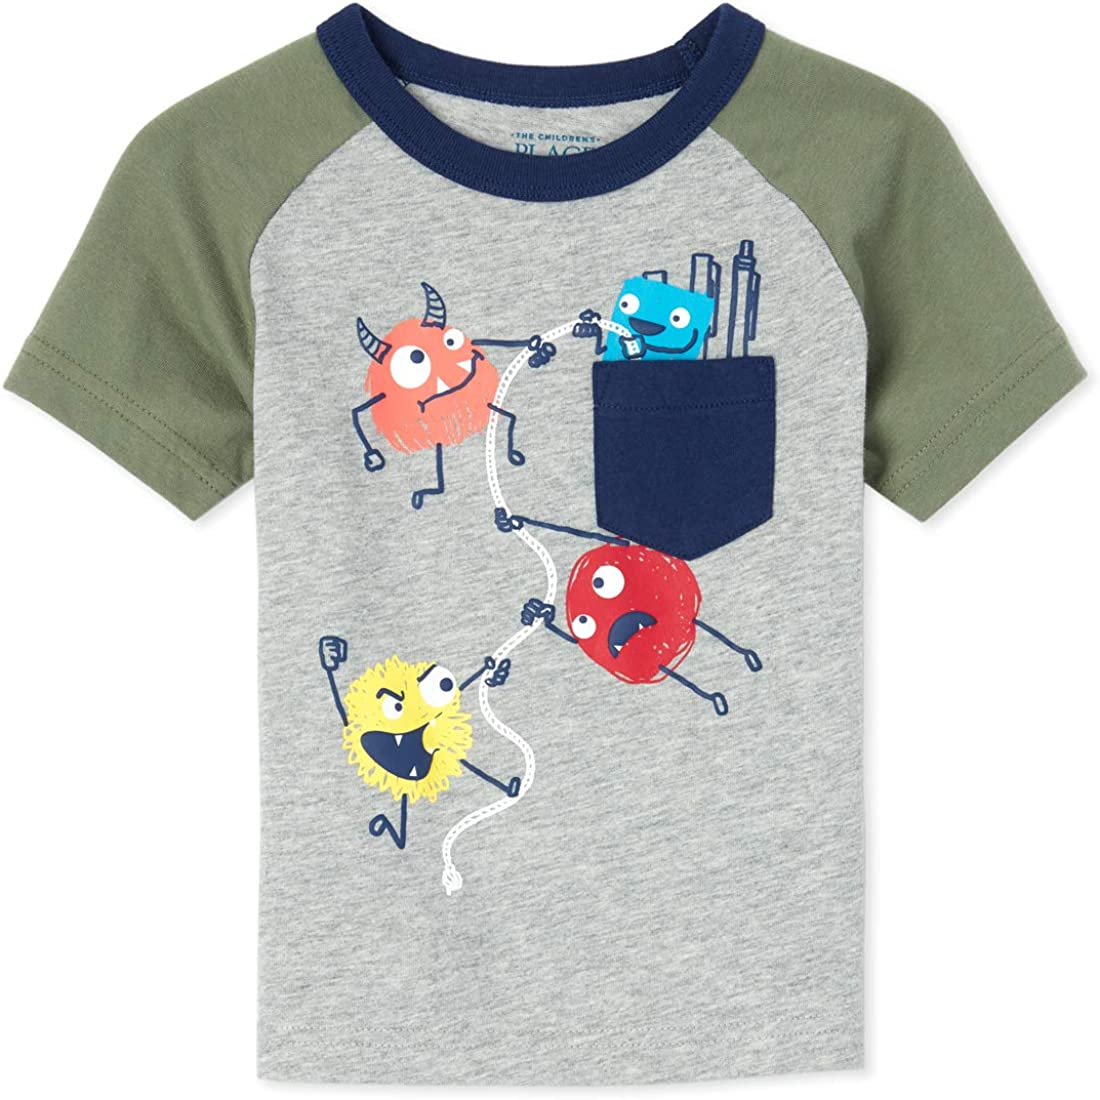 The Childrens Place Baby Boys Short Sleeve Graphic T-Shirt